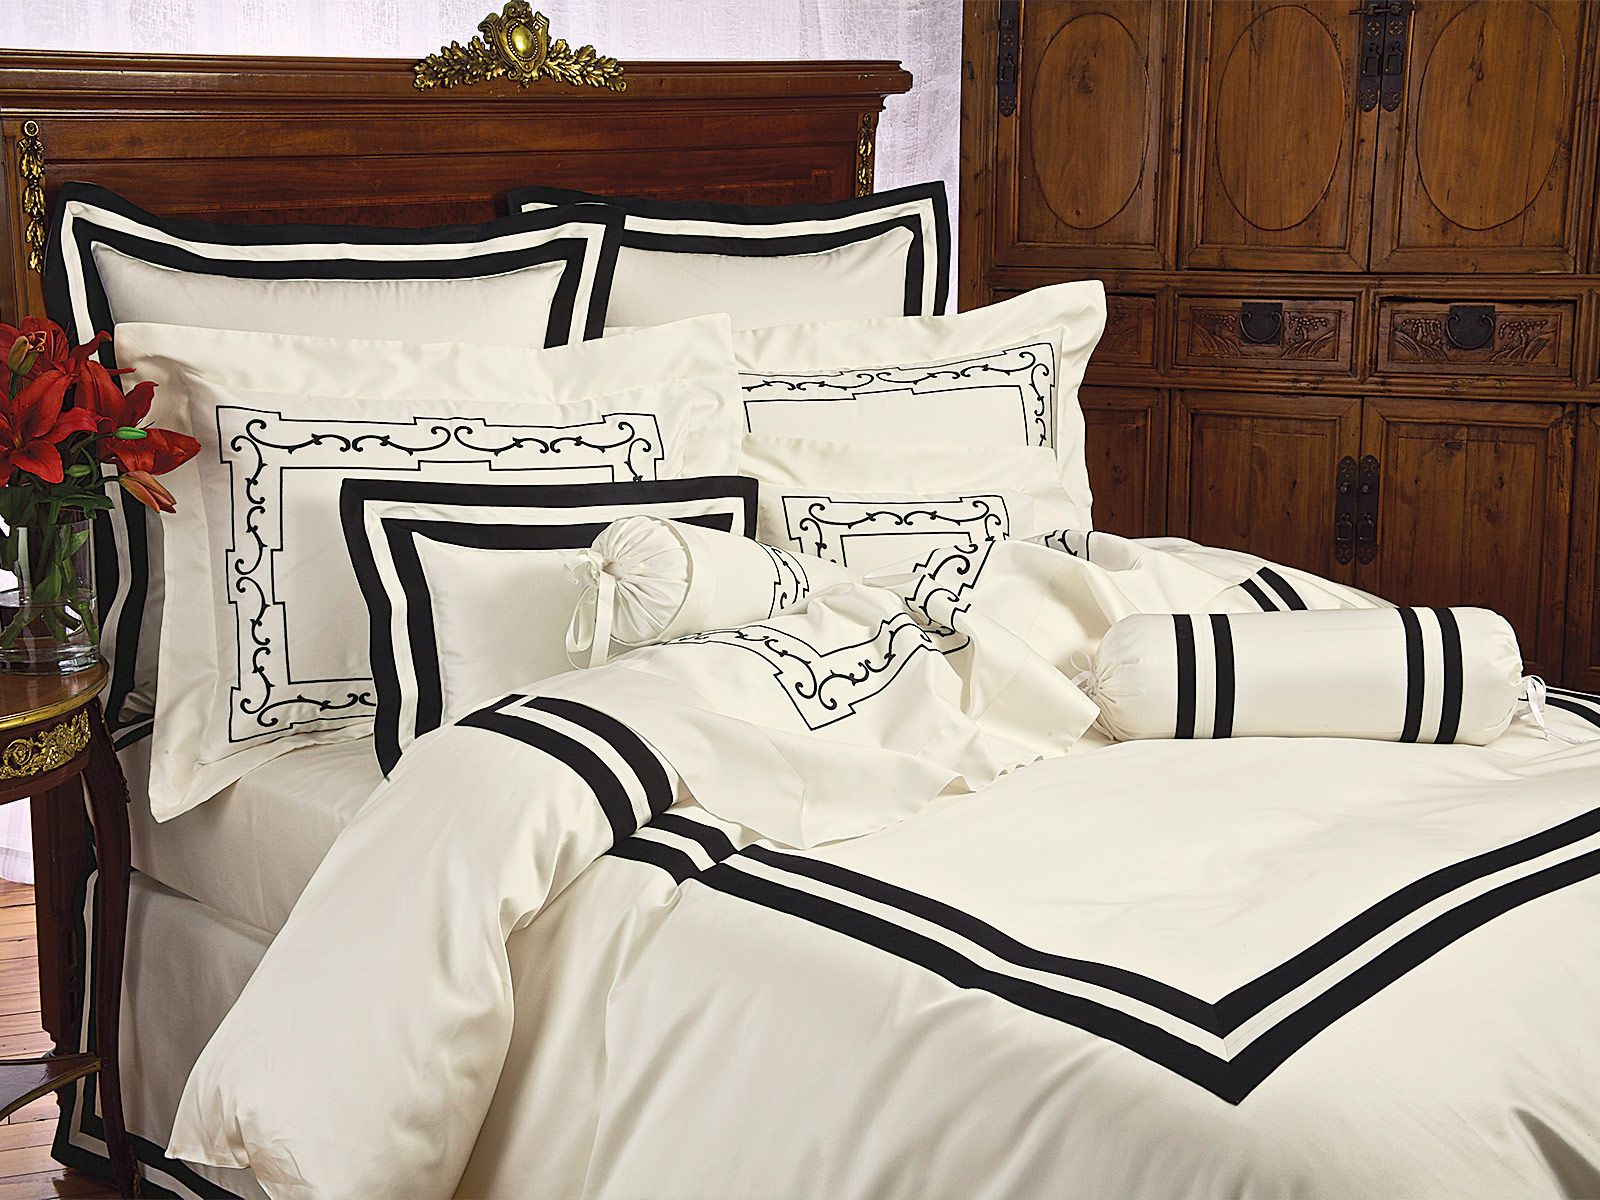 Berkley Square Fine Bed Linens Schweitzer Linen Bed